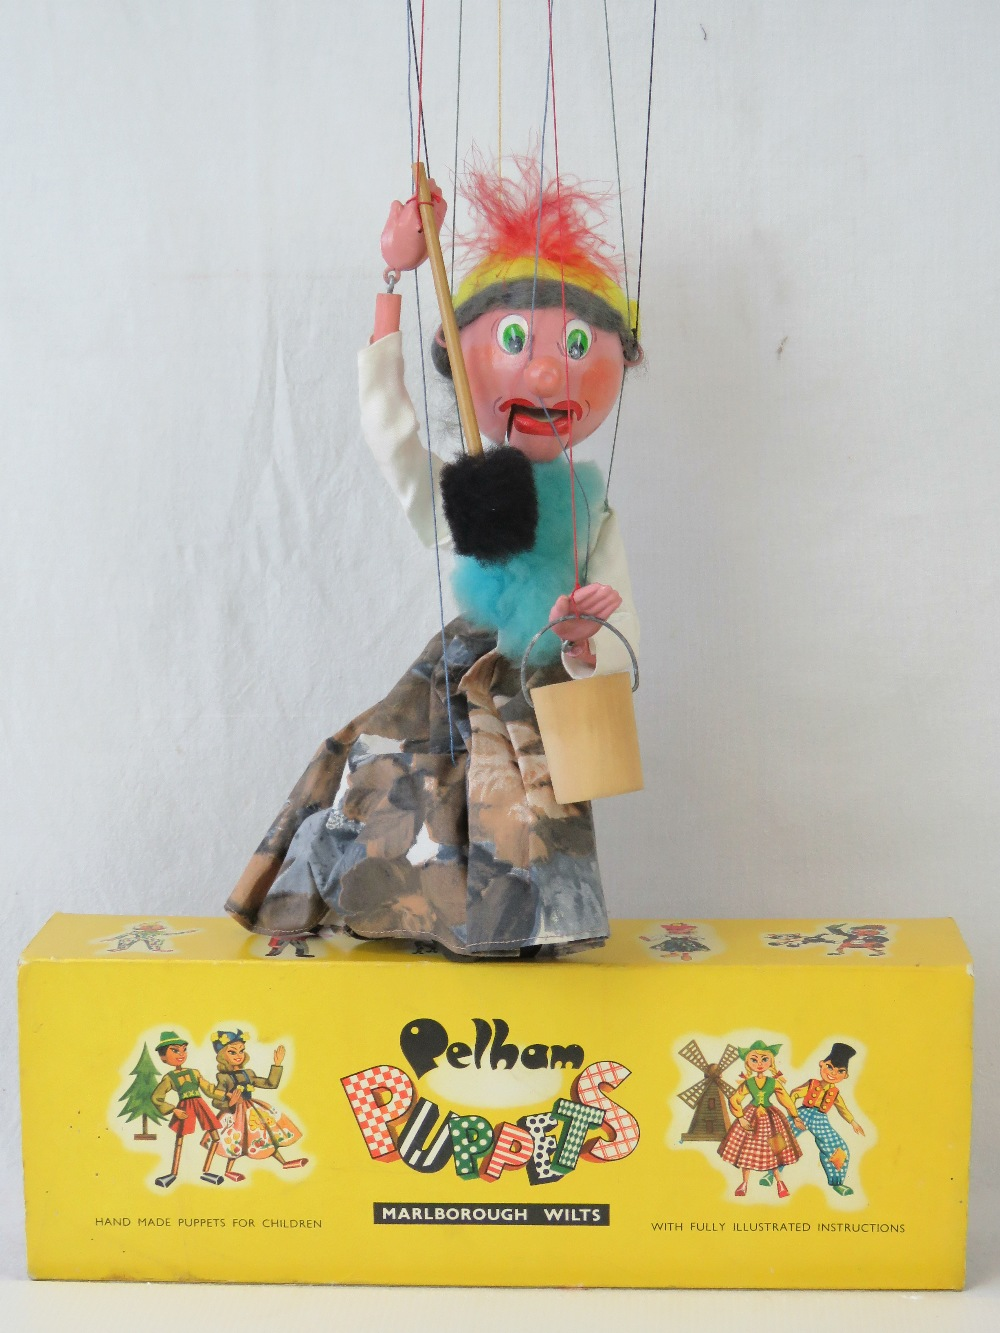 A Pelham puppet 'Old Lady' with bucket a